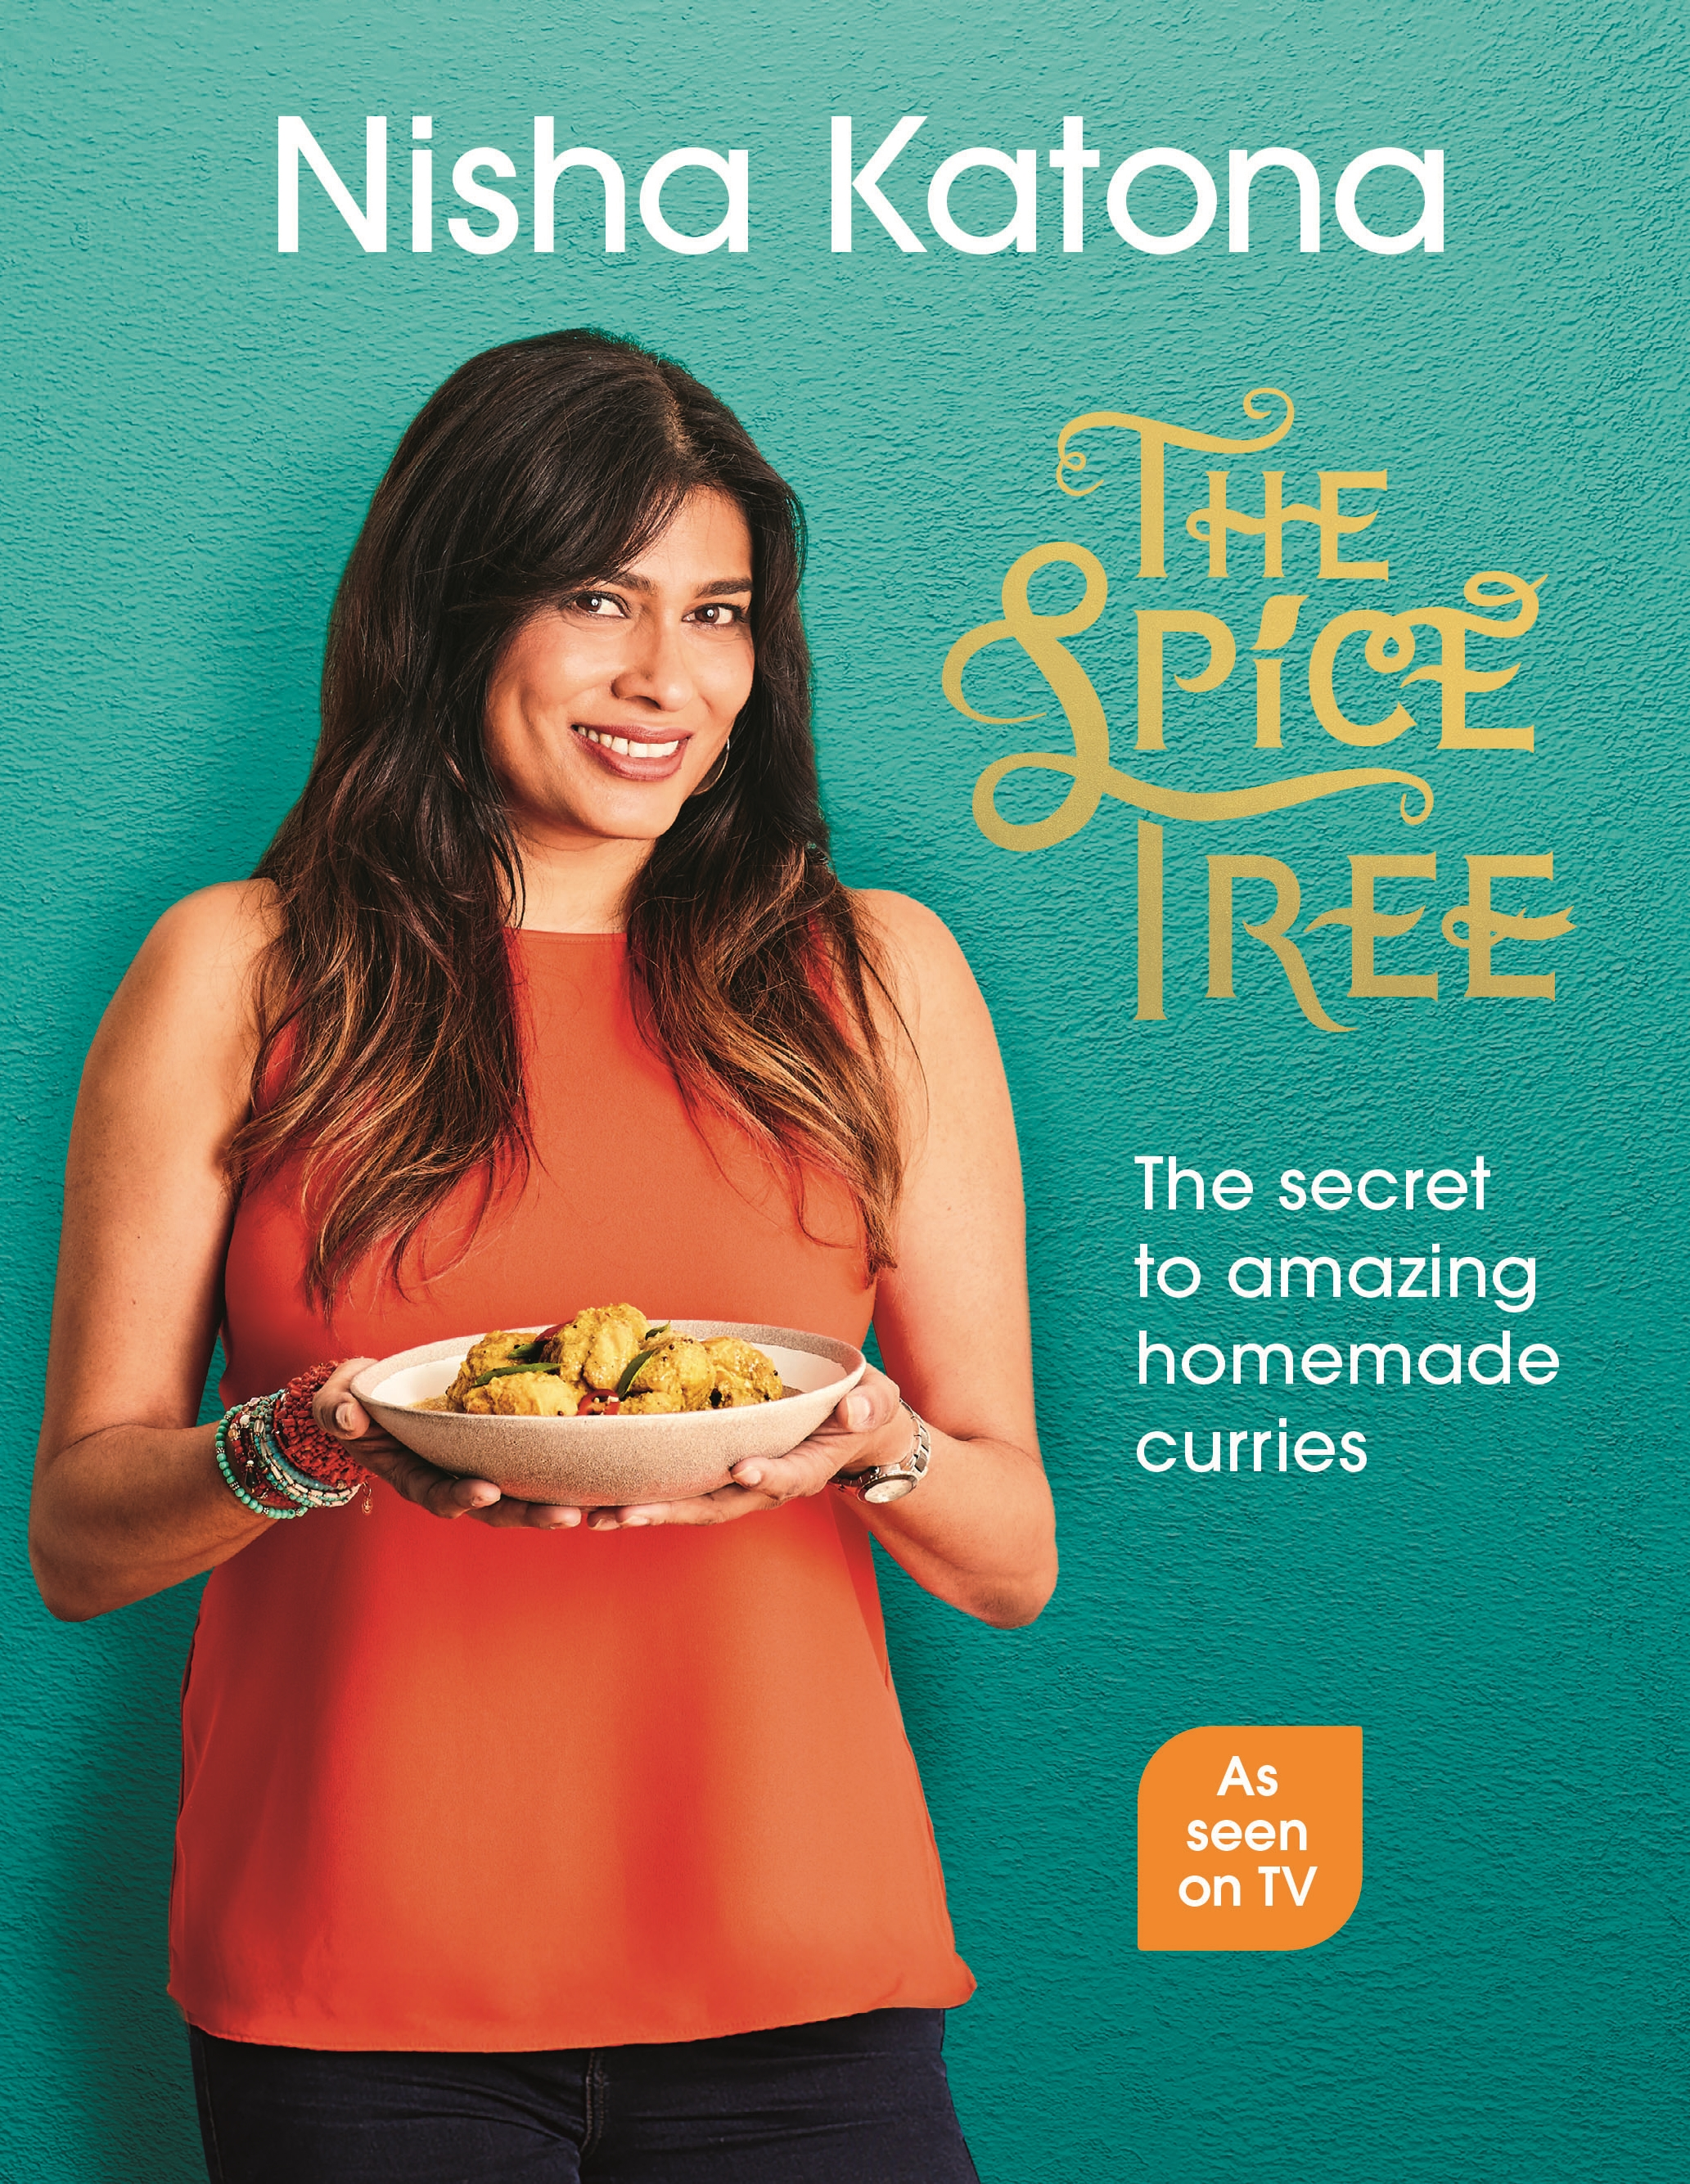 The Spice Tree by Nisha Katona - Penguin Books Australia